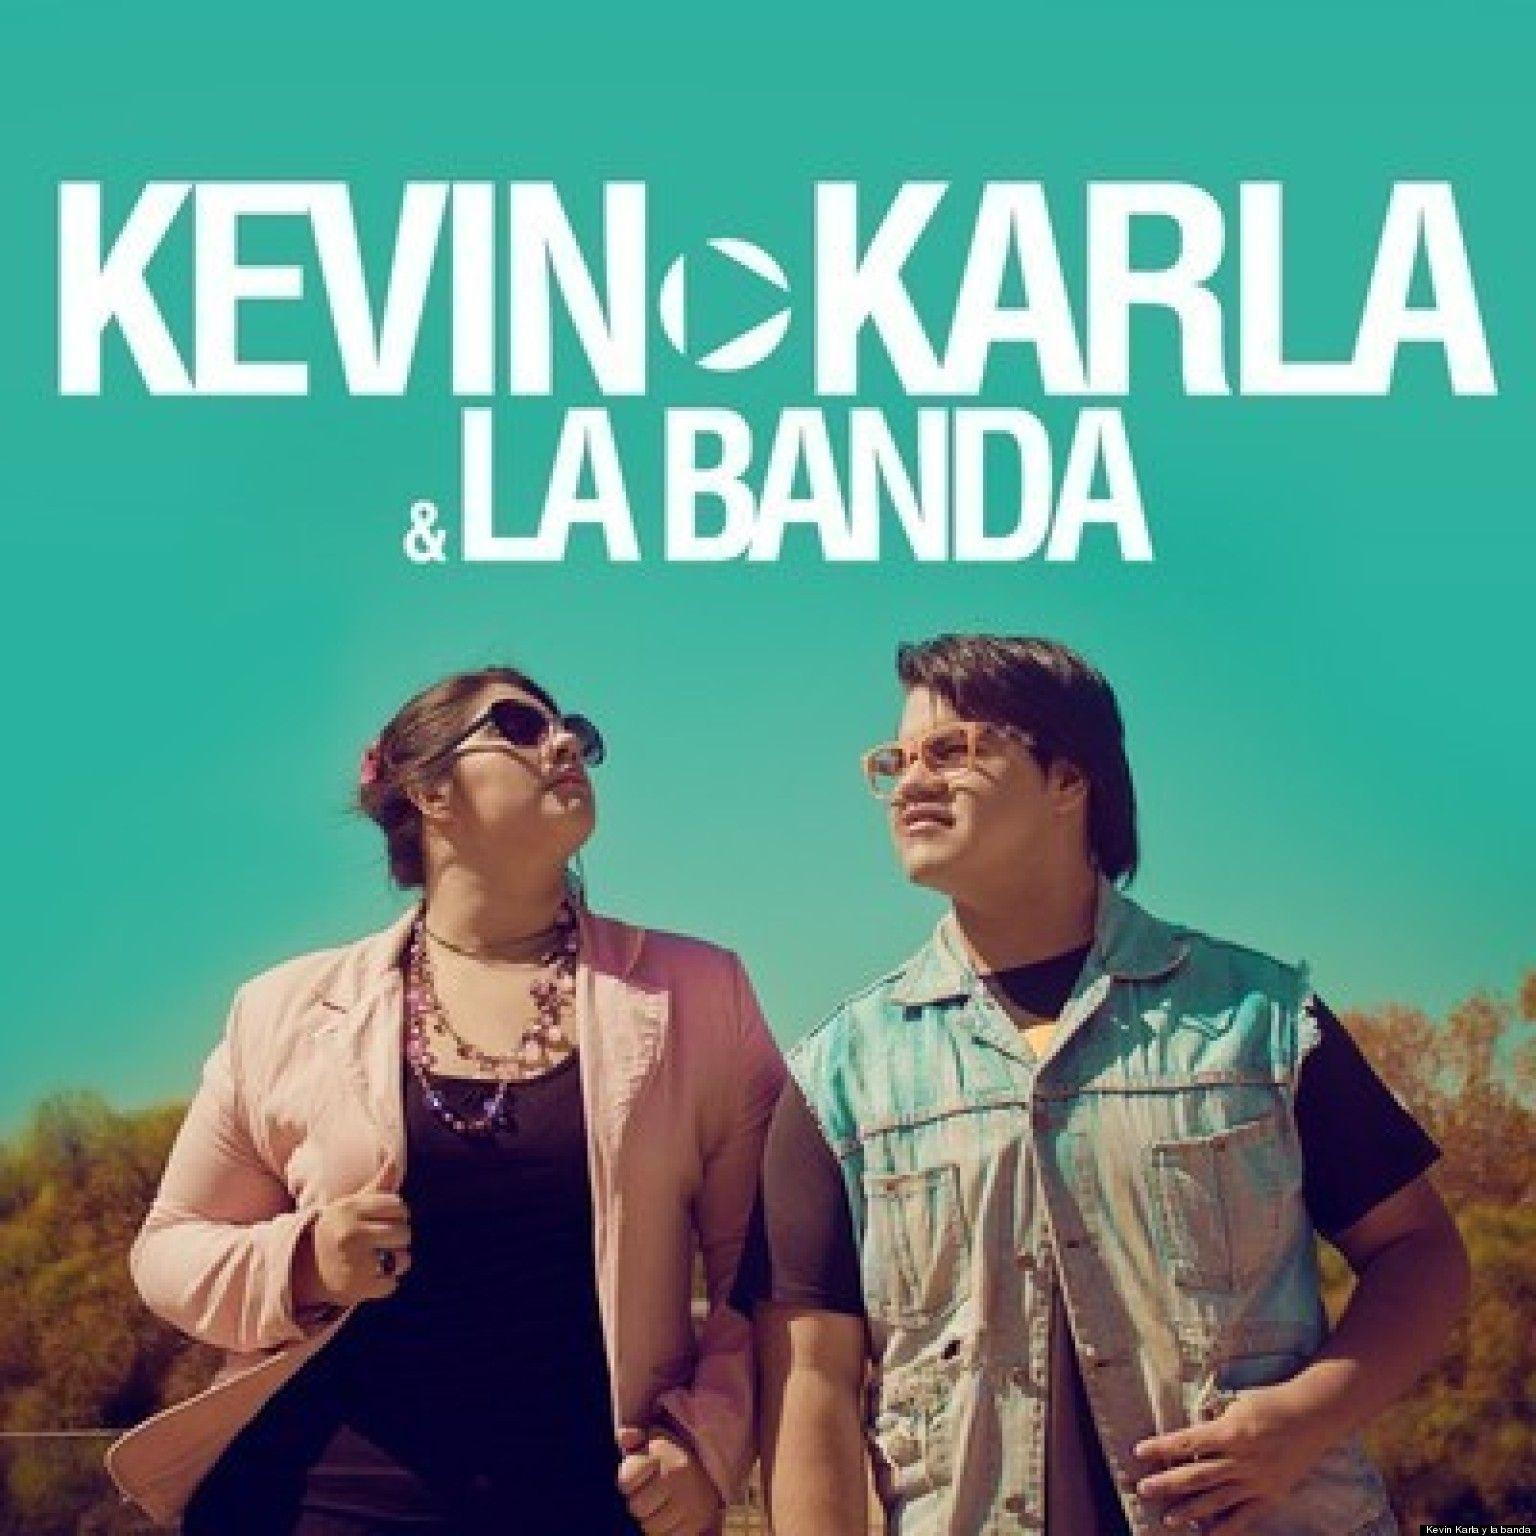 LISTEN: Chilean Duo Covers Popular Songs In Spanish